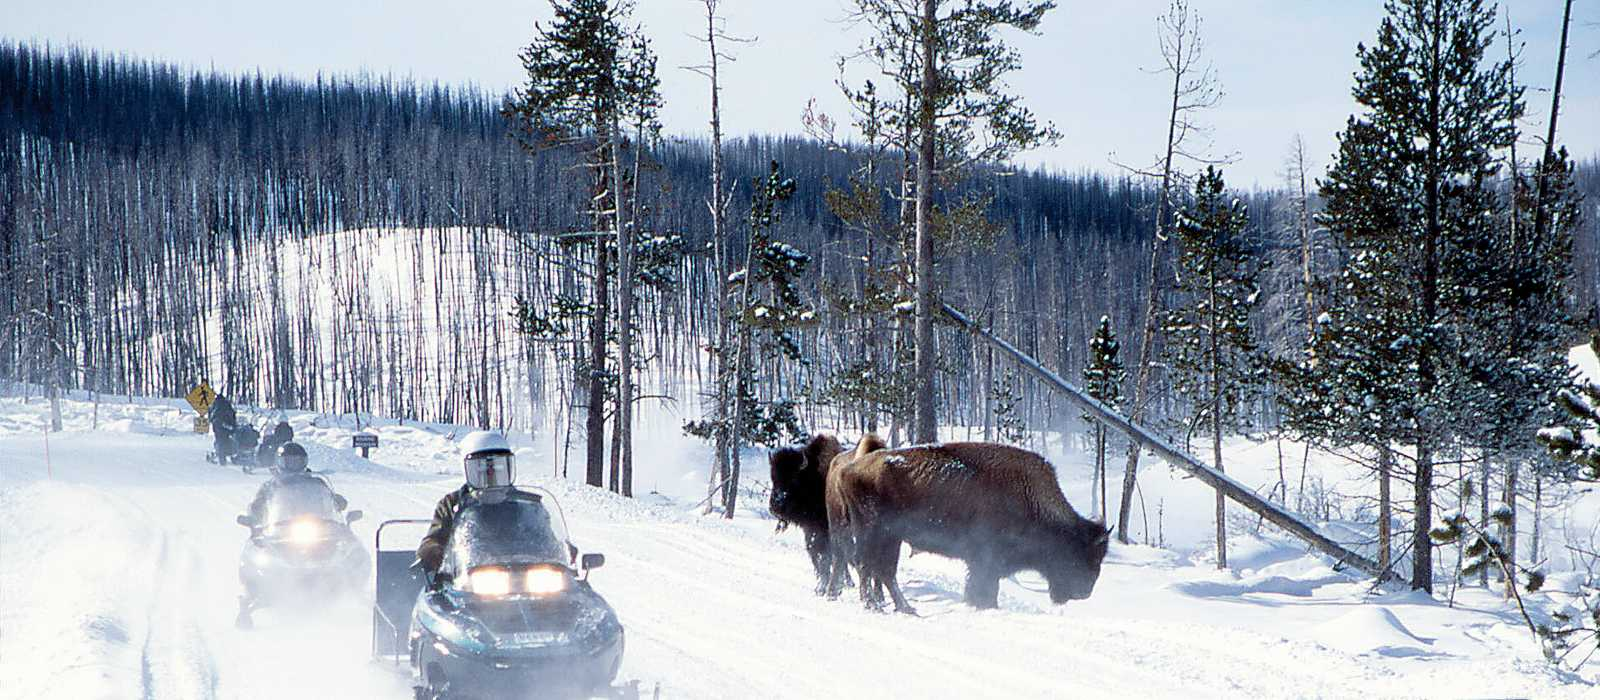 Snowmobiles passing bison near Roaring Mtn. Jim Peaco March 1997